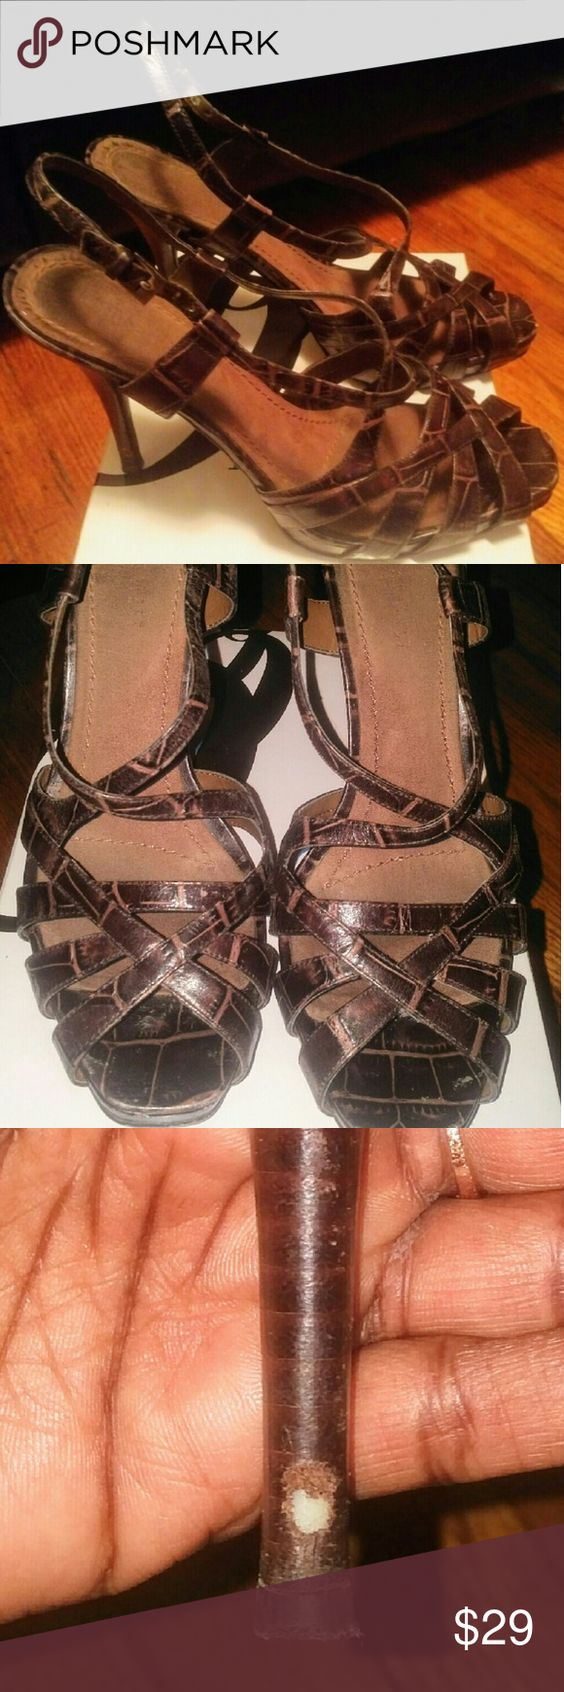 Faux Croc Platform Sandals Nine West faux croc platform sandals. Small scuff on back of left shoe. Detailed picture included. Reasonable offers considered Nine West Shoes Heels